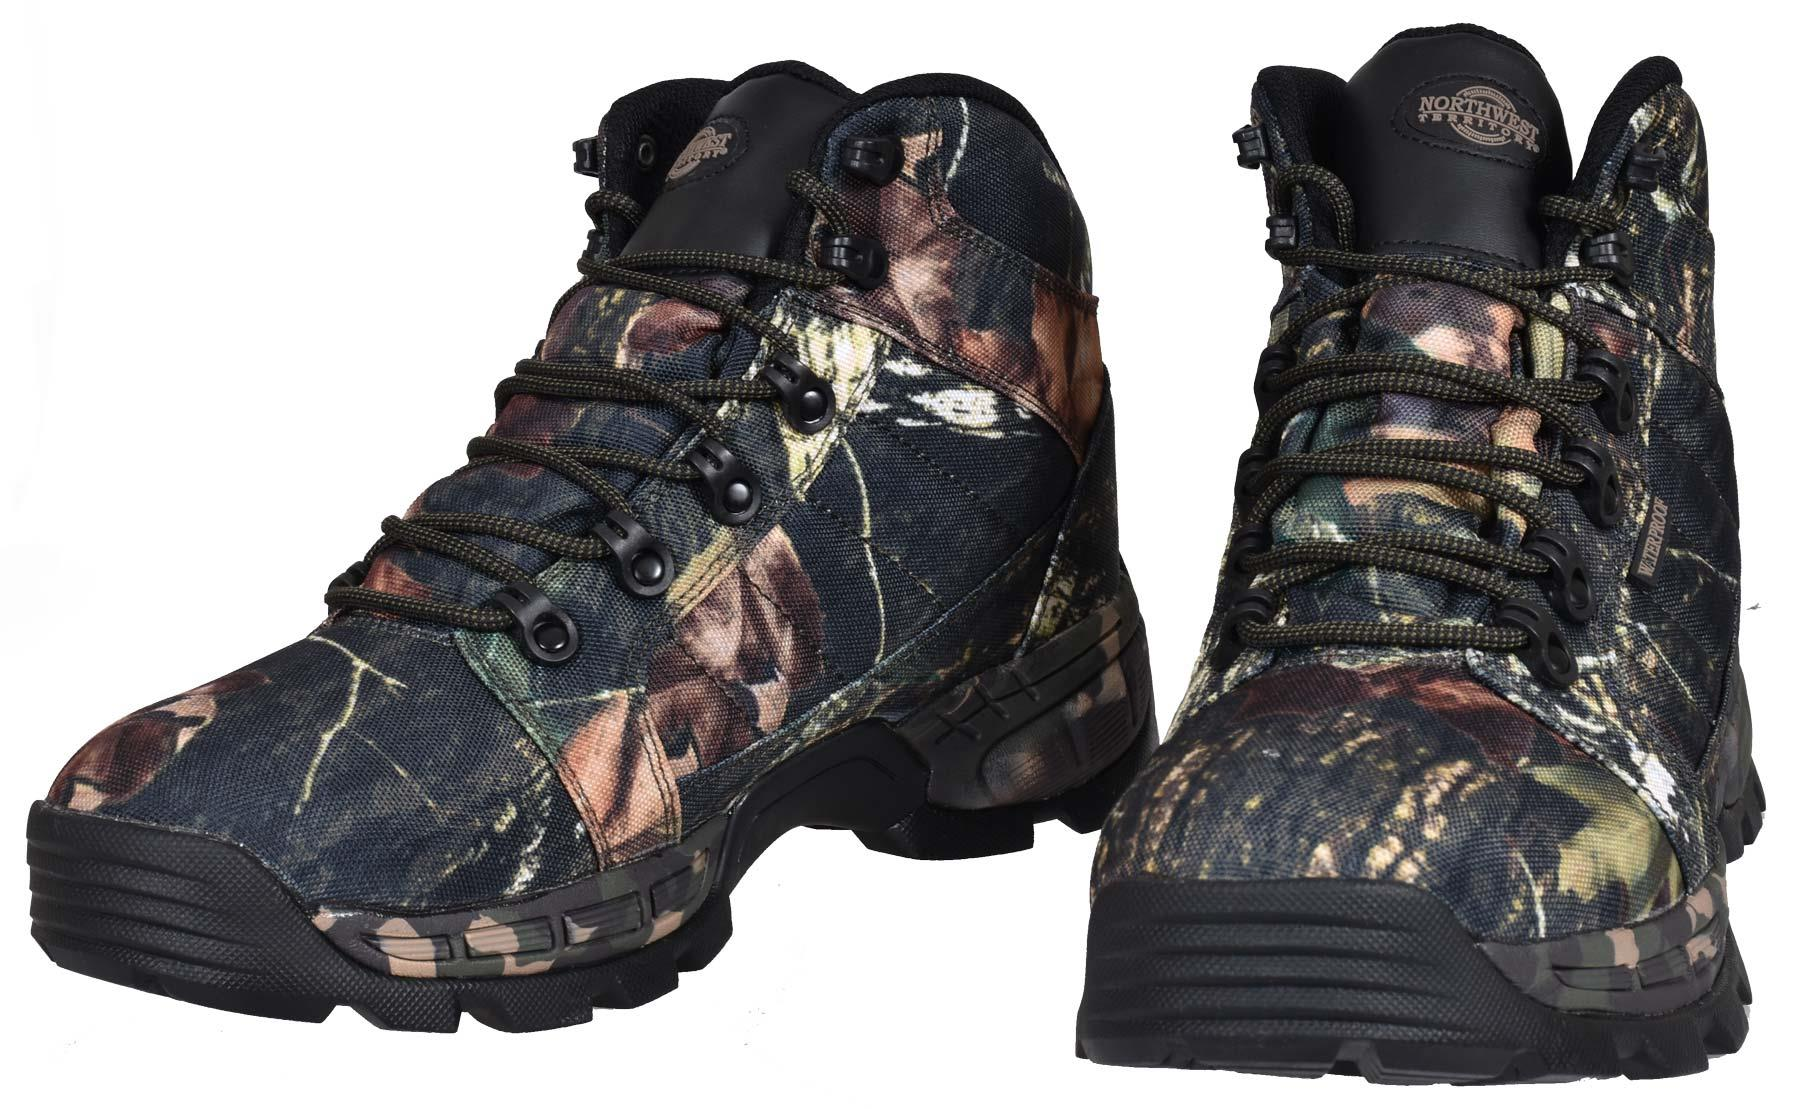 Mens Ankle Boots Northwest Territory Camoflauge Walking Hiking Lace up Shoes